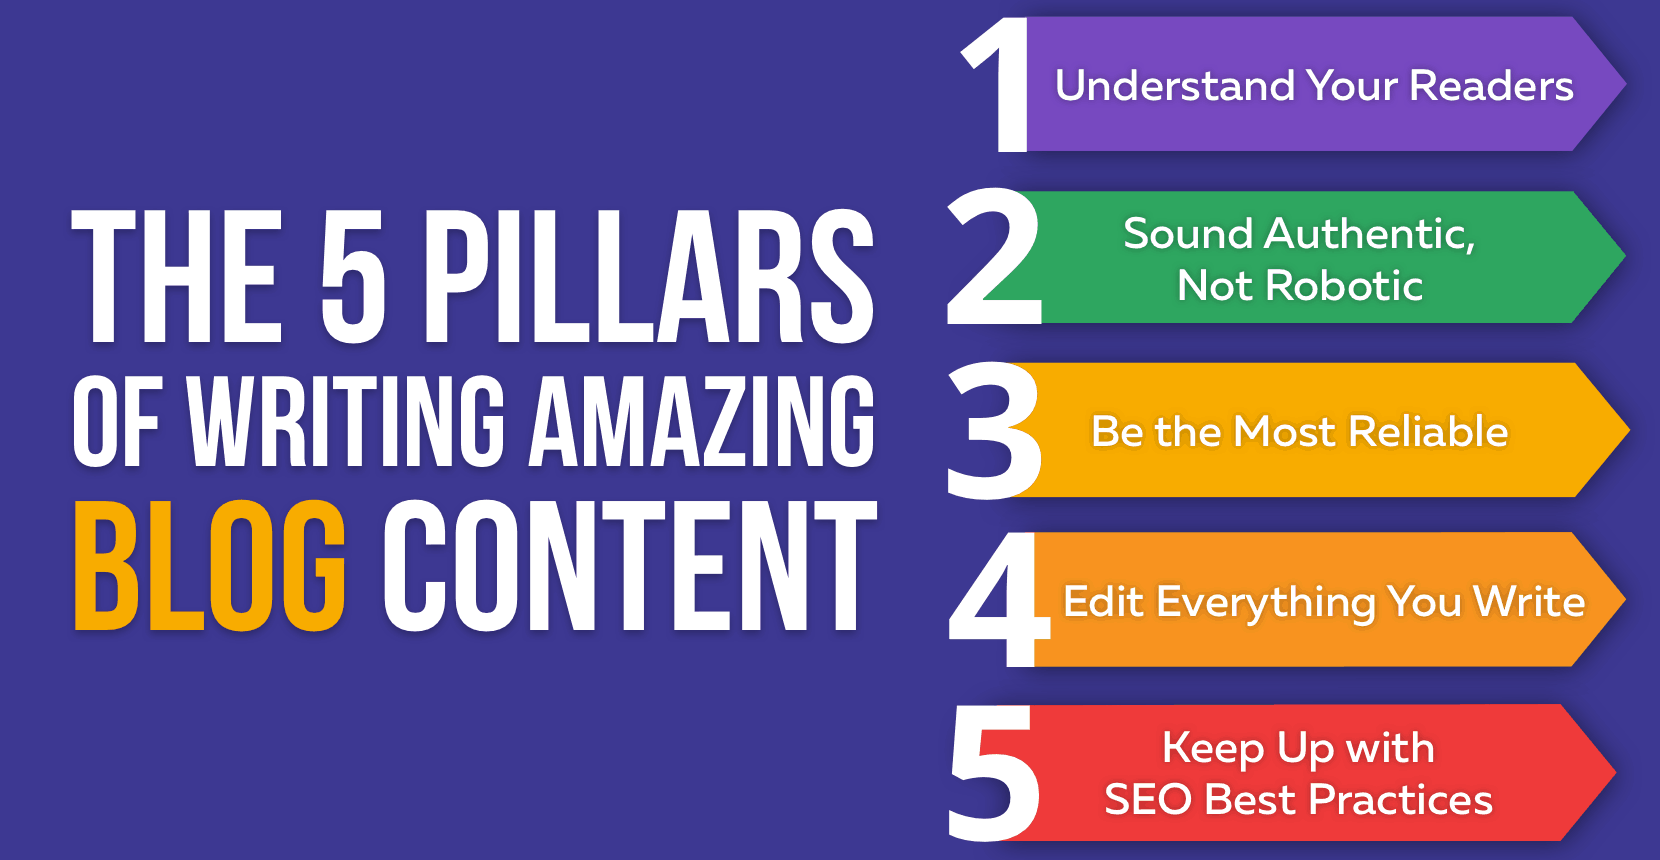 The Five Pillars of Writing Great Blog Content